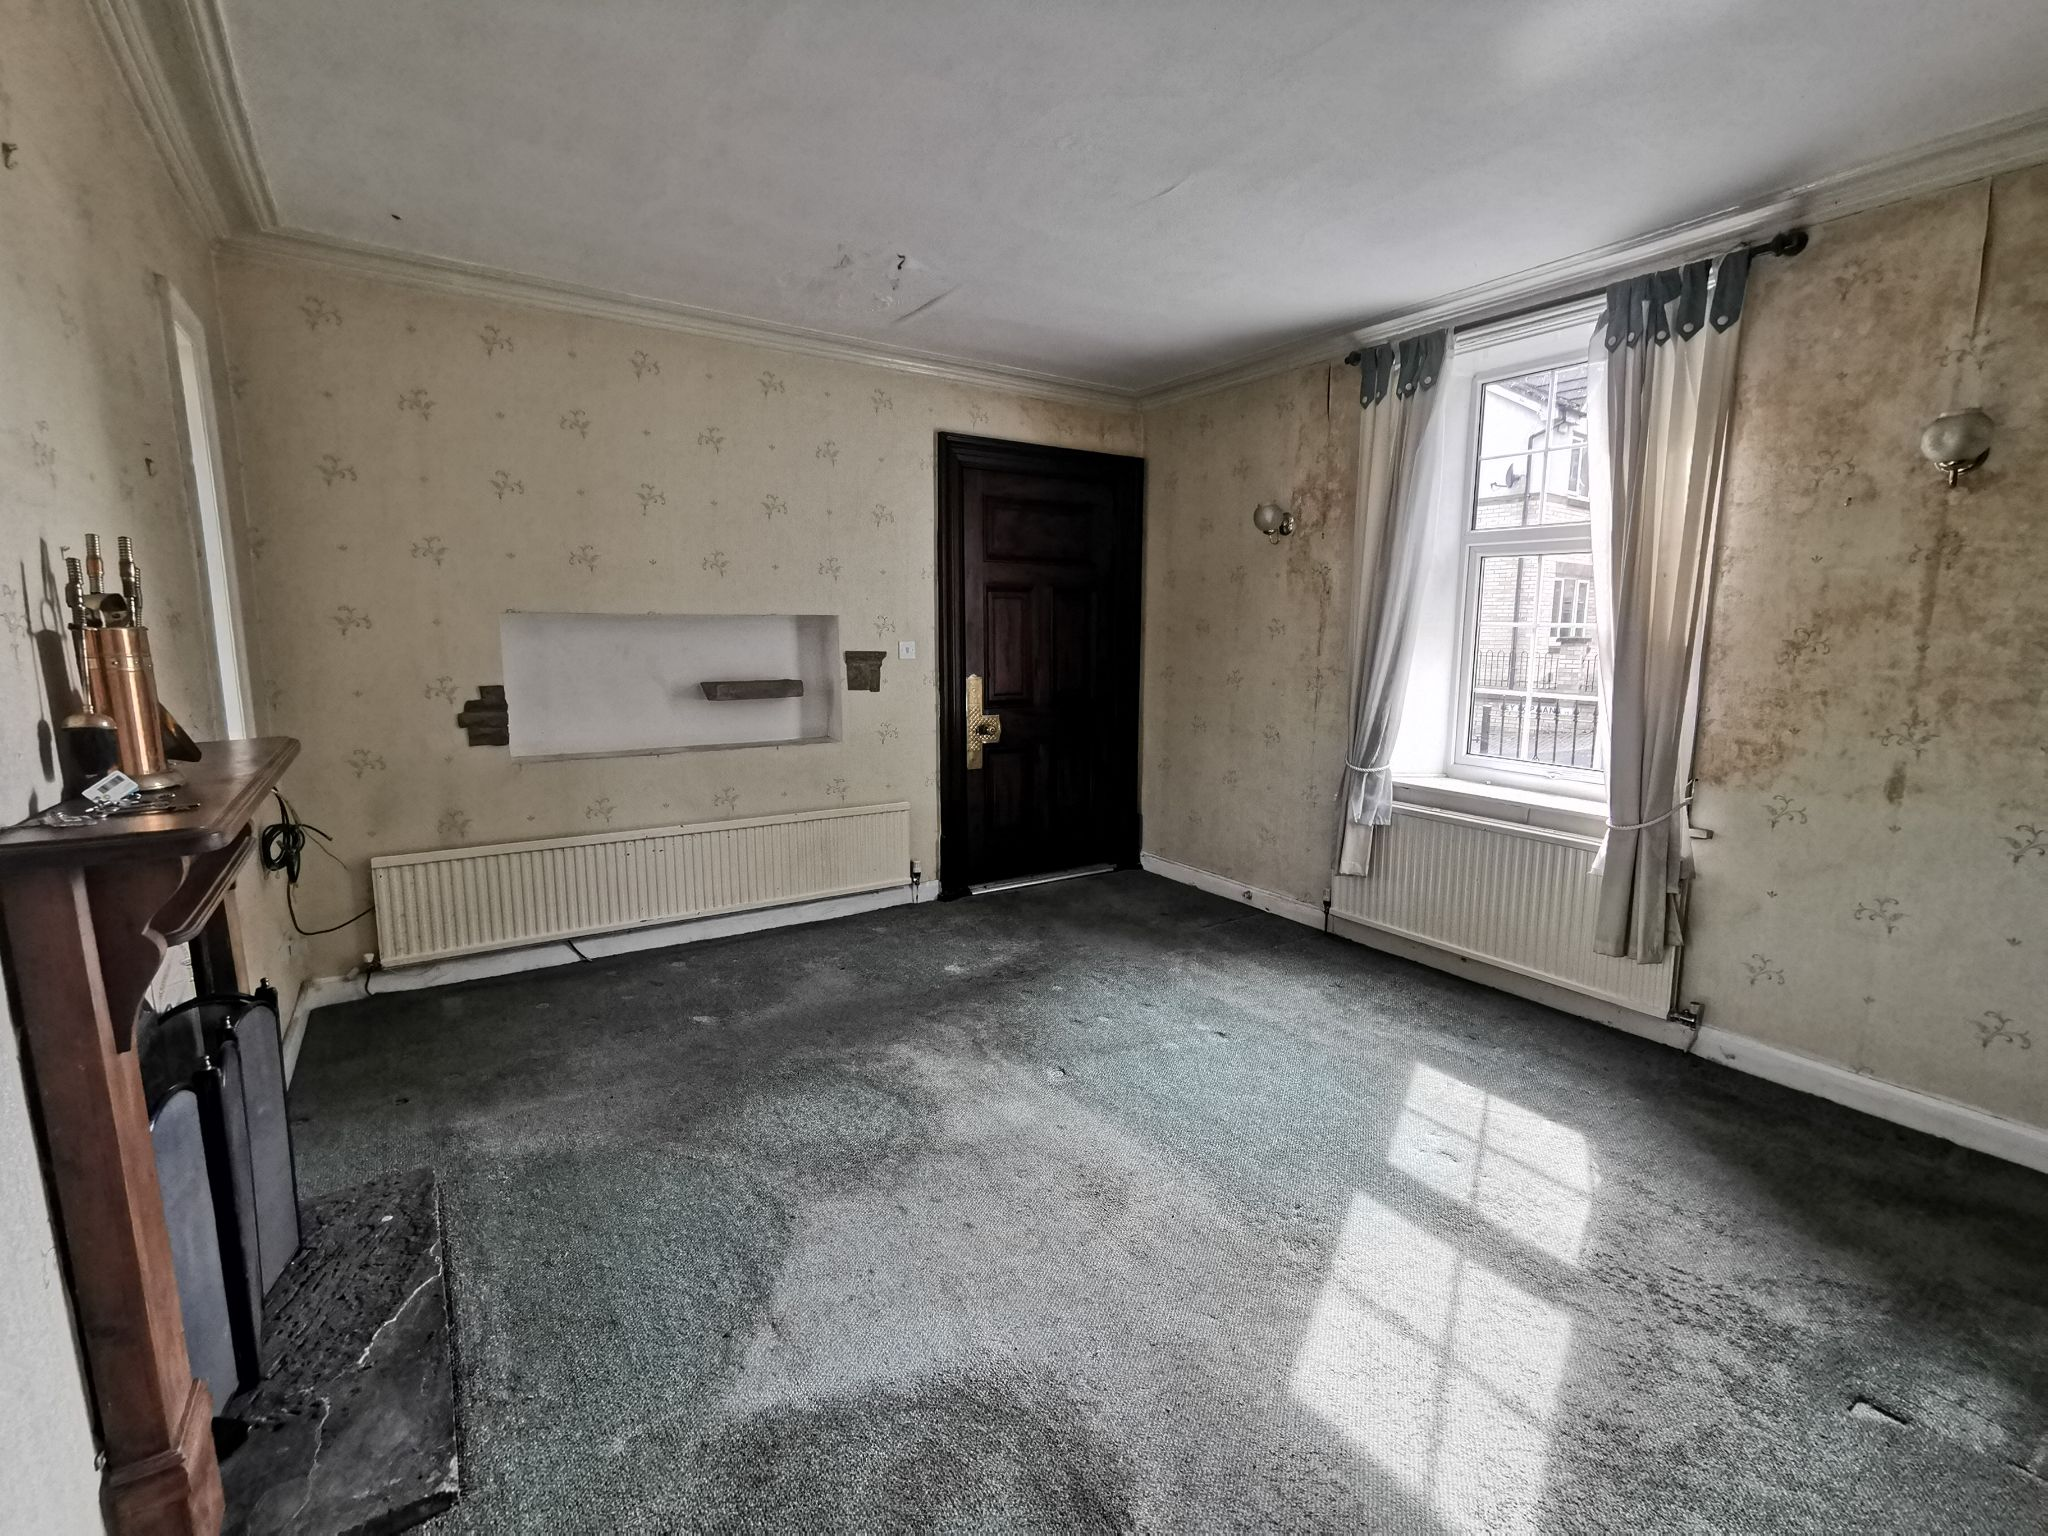 3 bedroom detached house For Sale in Bradford - Photograph 6.